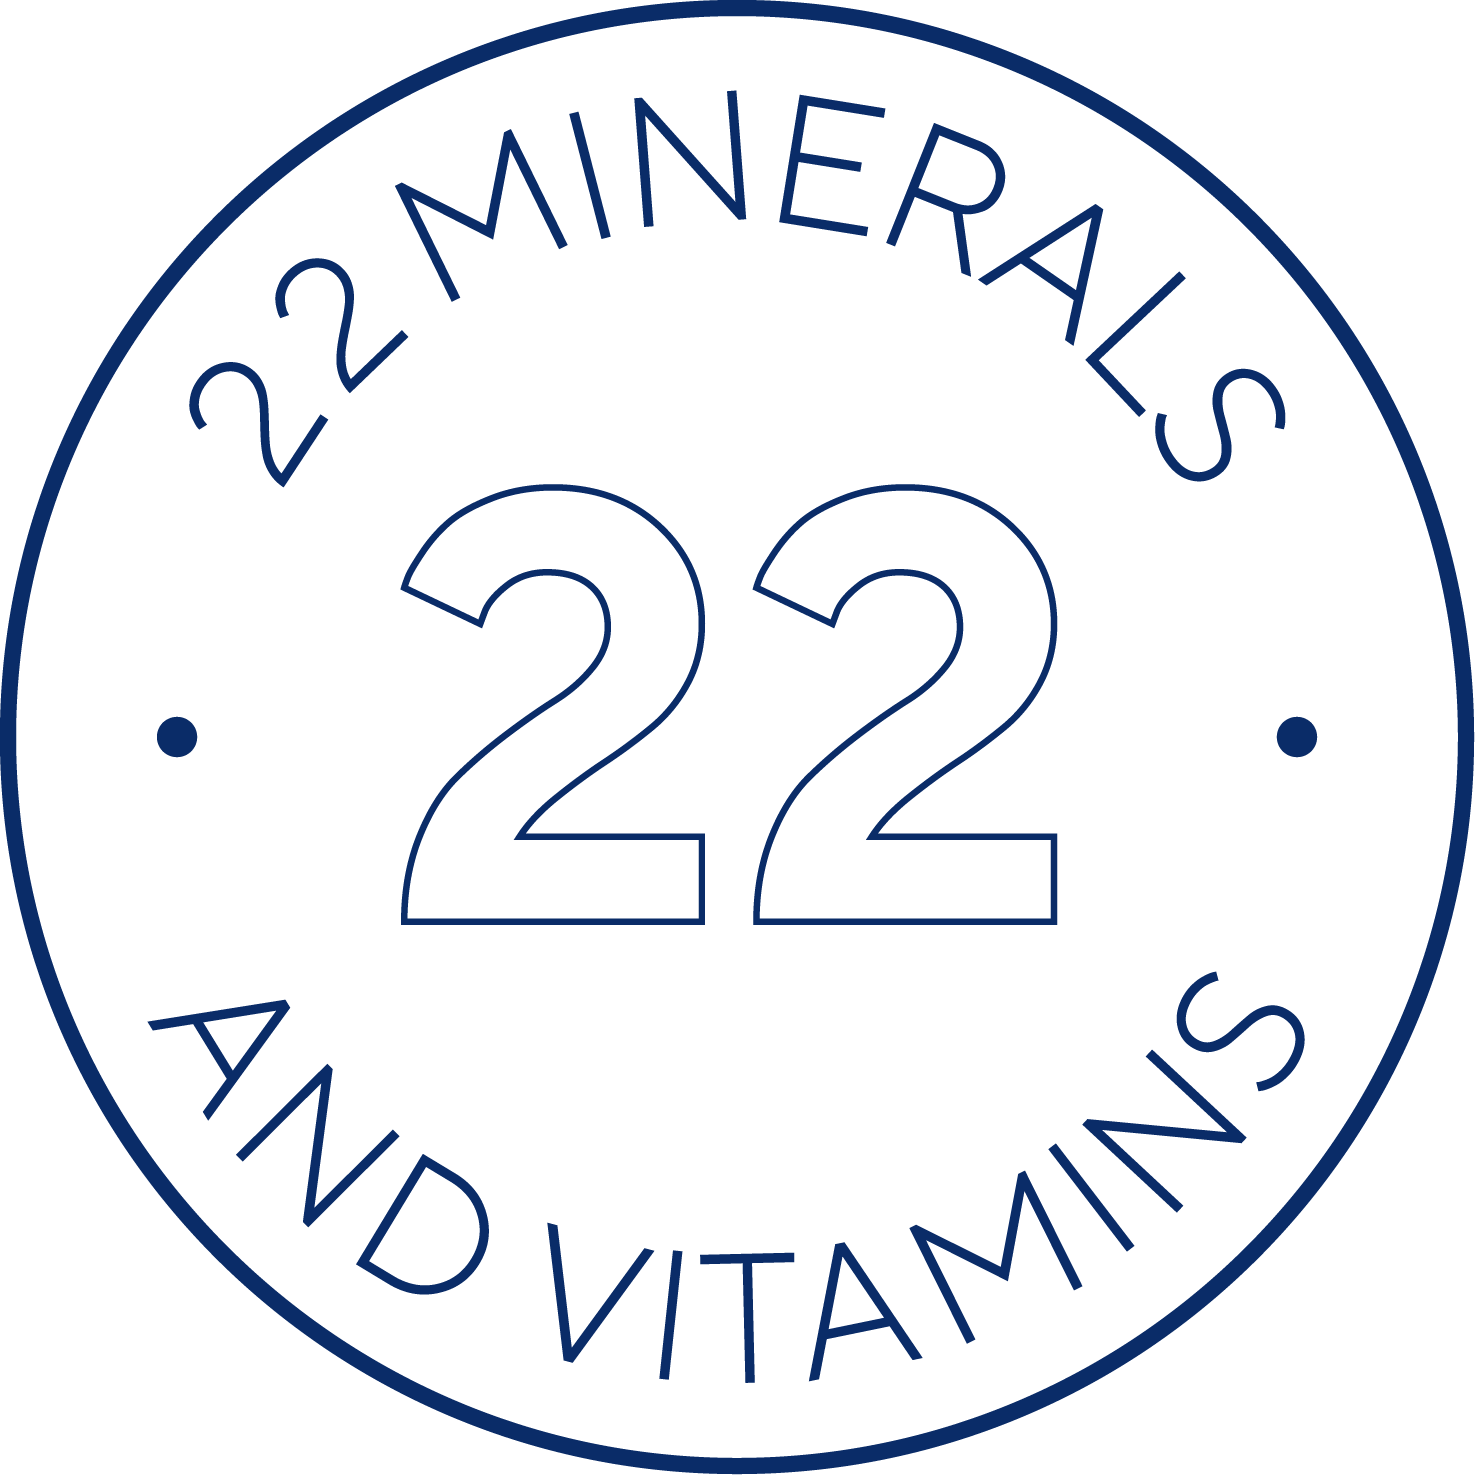 22 minerals and vitamins